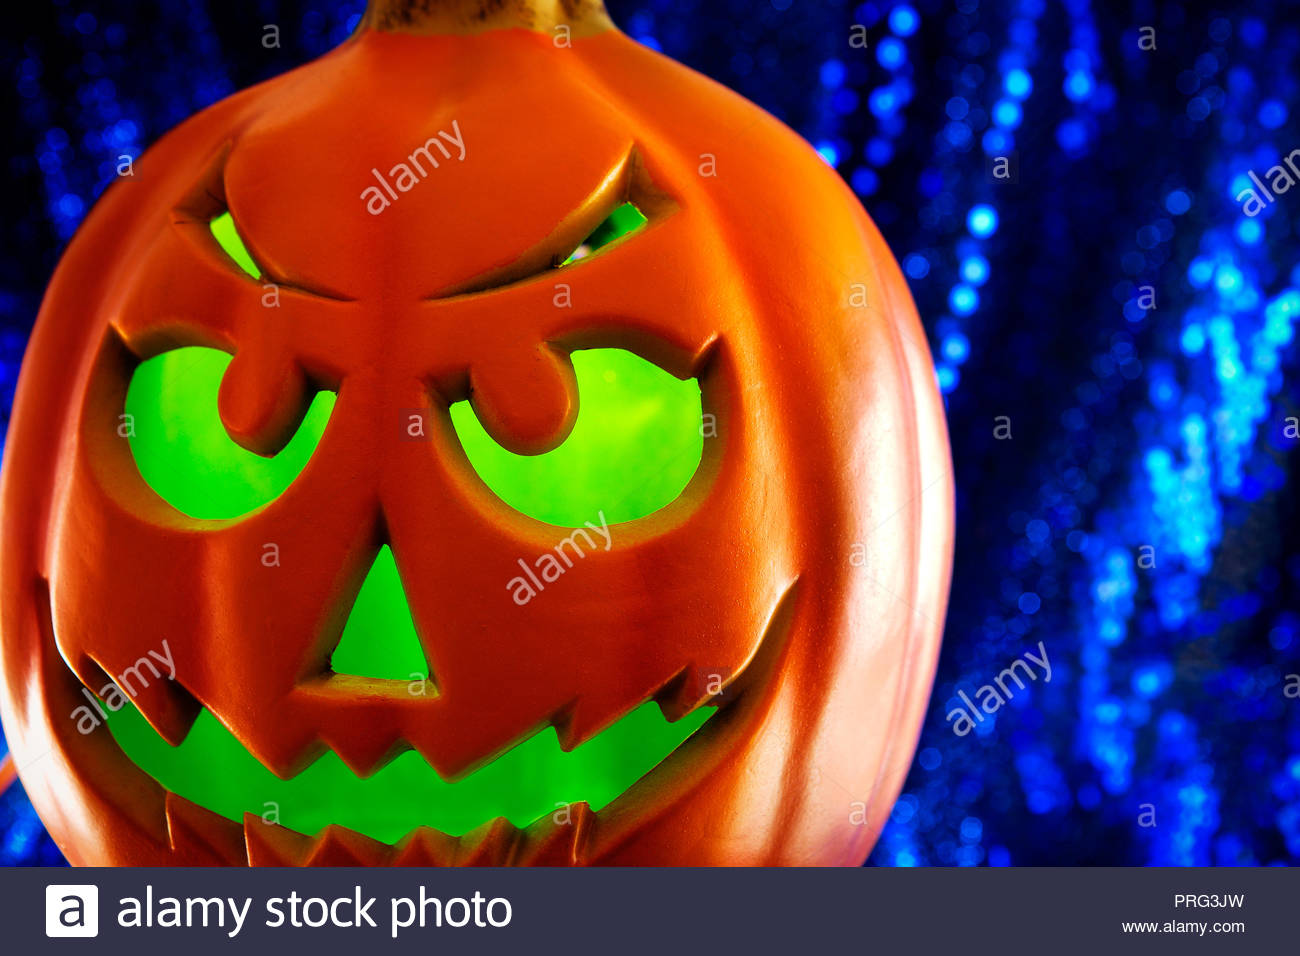 pumpkin lit from interior with glowing green light and shimmering